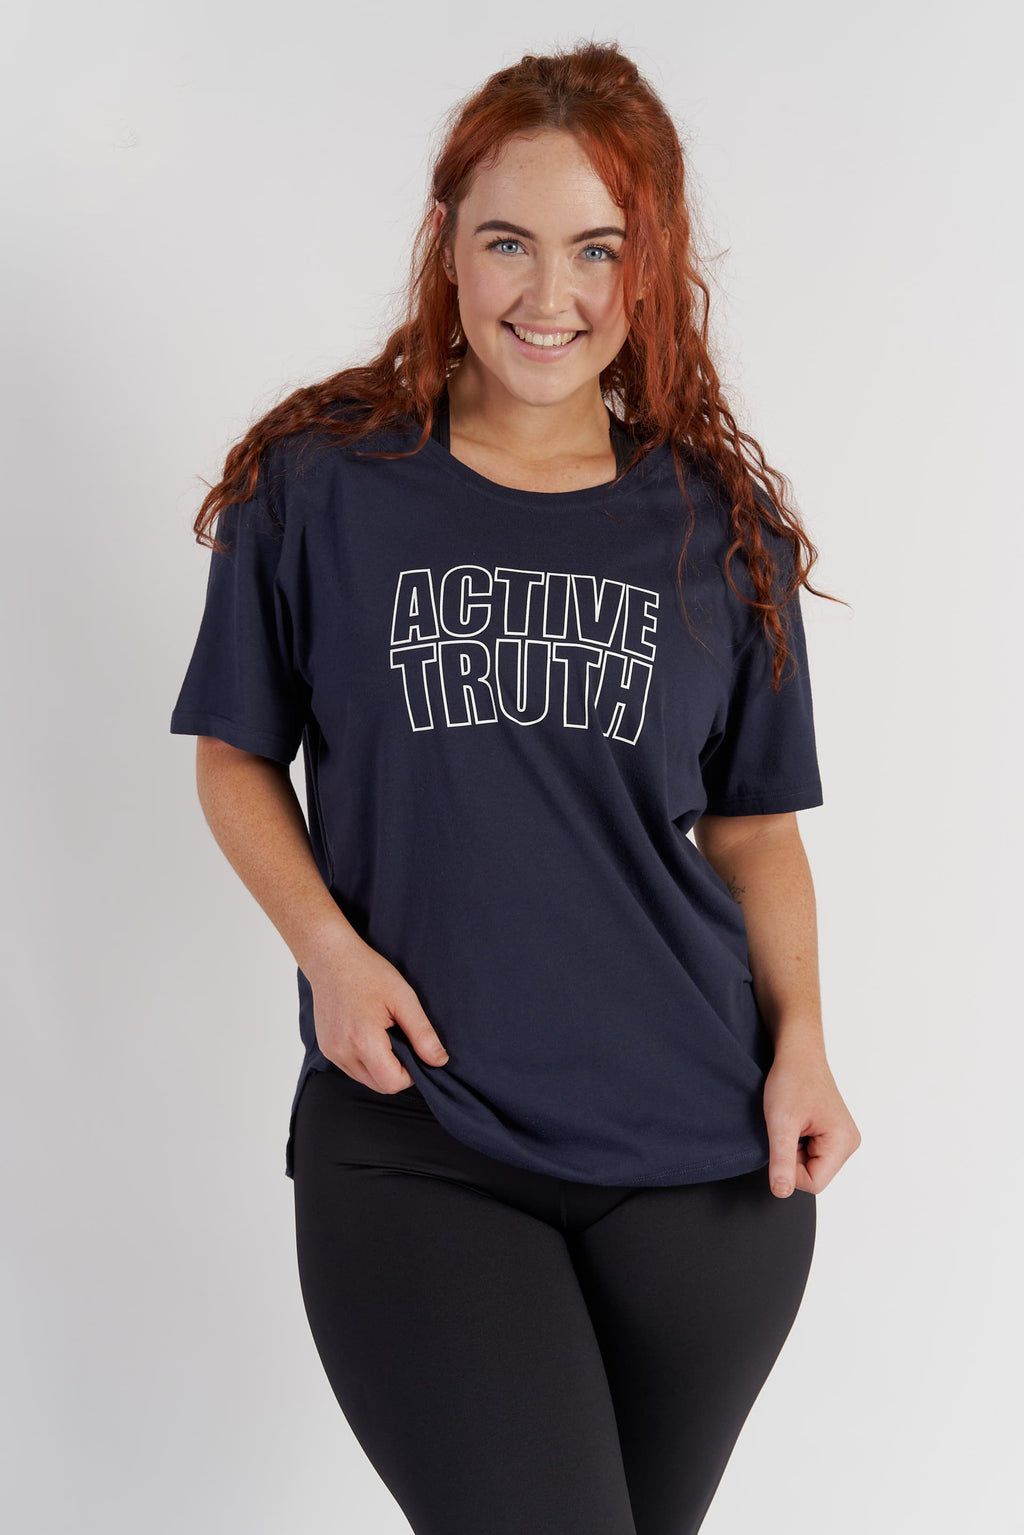 Crew Neck Logo T-Shirt - Navy from Active Truth USA